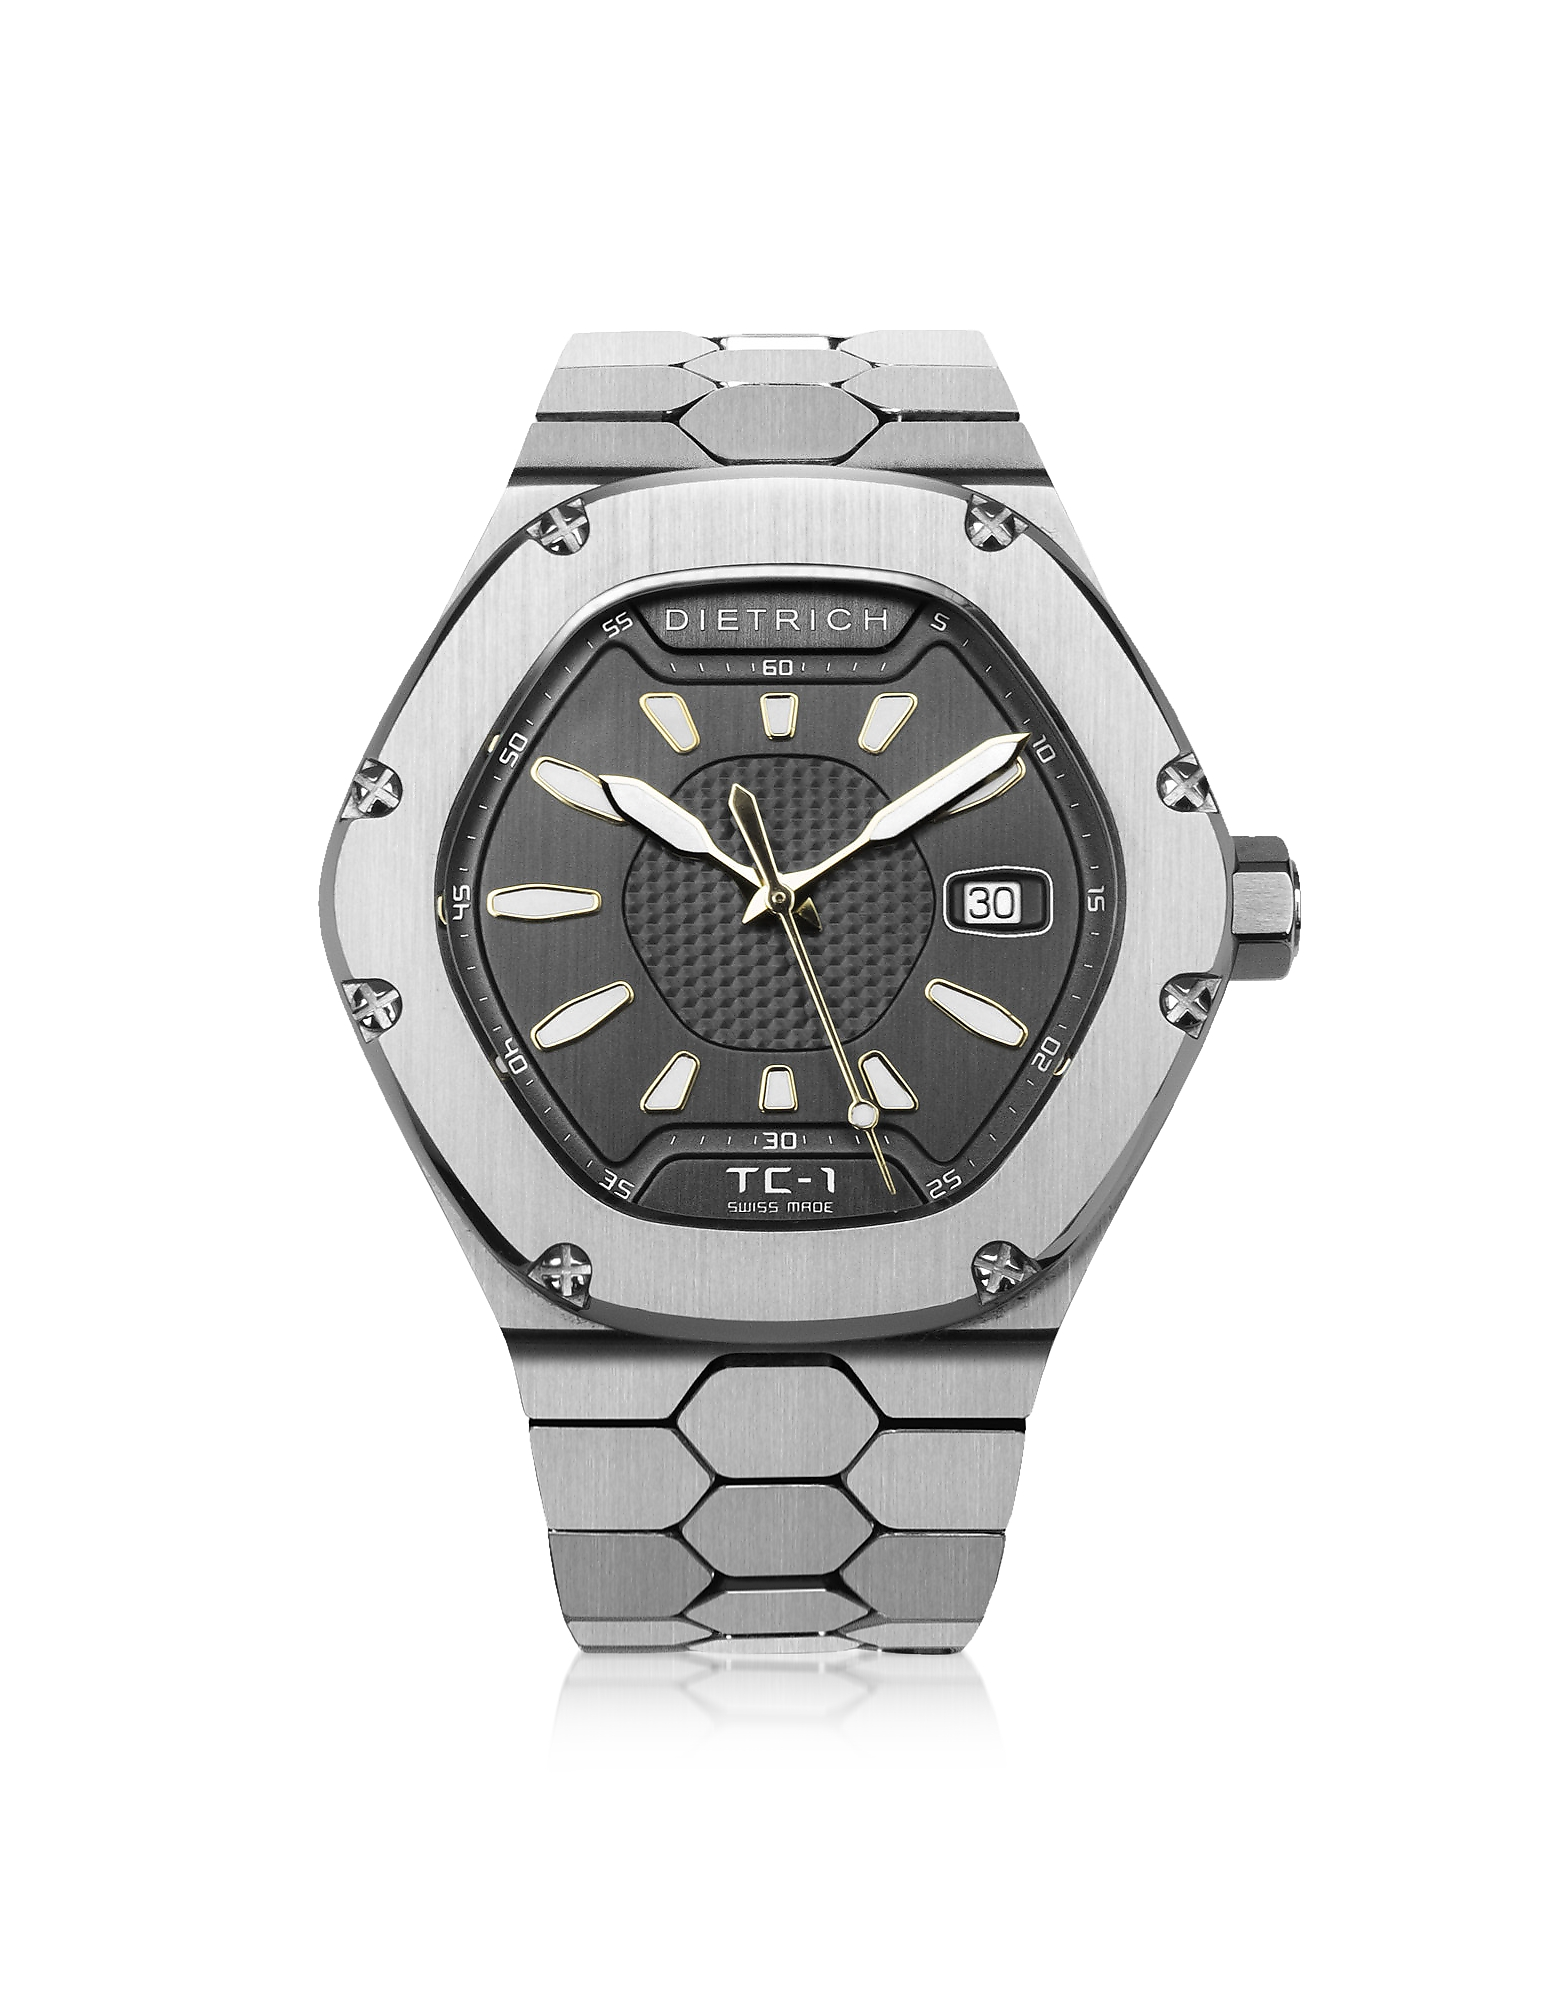 Dietrich Designer Men's Watches, TC-1 SS 316L Steel w/White Luminova and Gray Dial